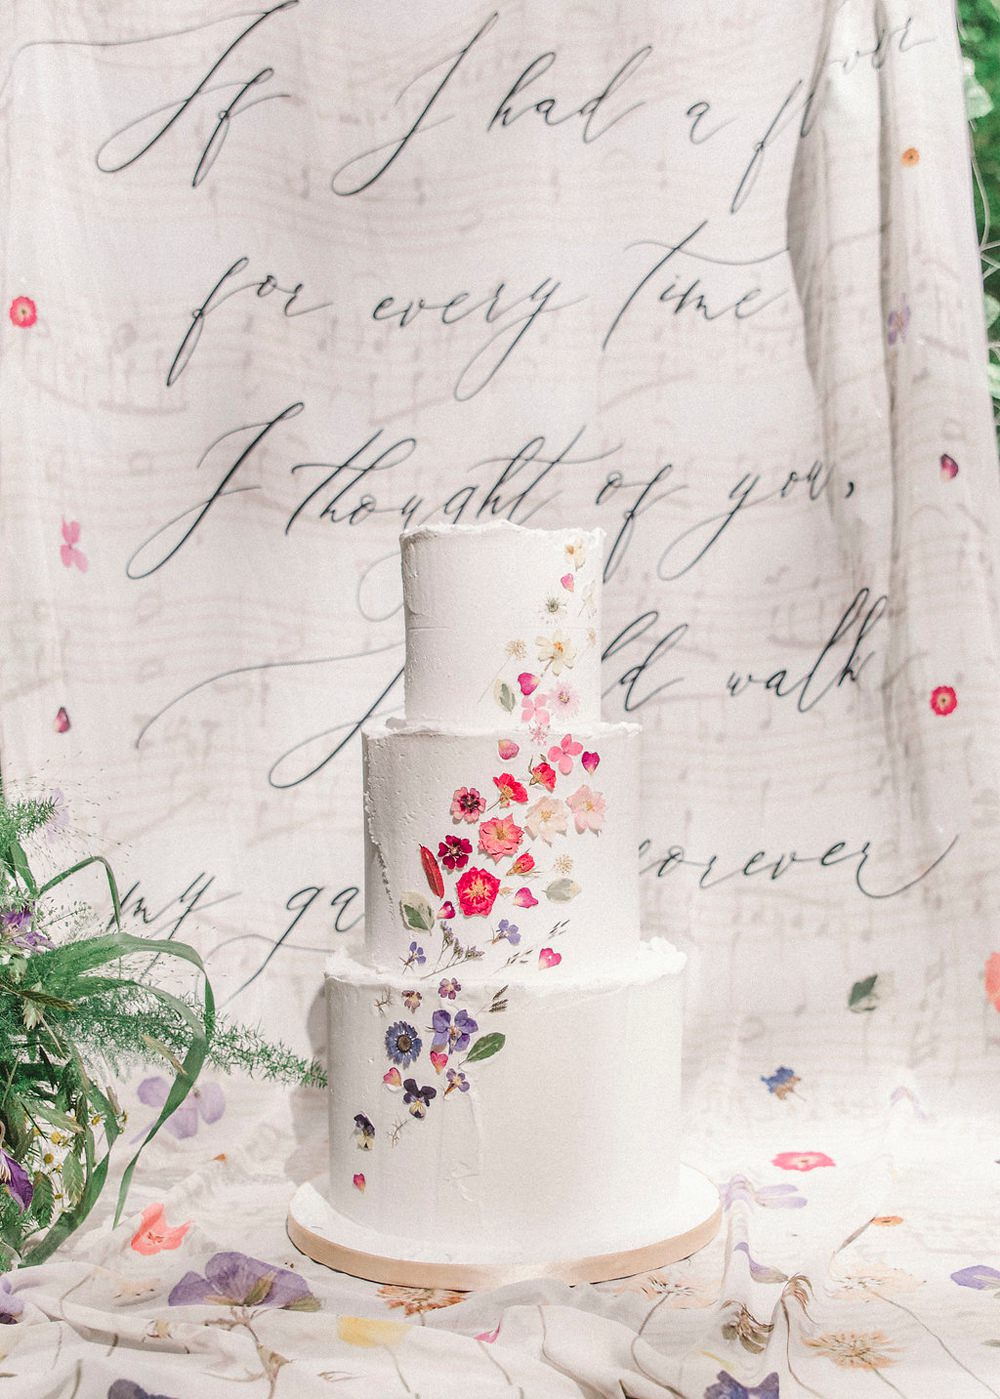 Cake Backdrop Banner Words Letter Love Calligraphy Table Boho Woodland Wedding Ideas Camp Katur Emily Olivia Photography